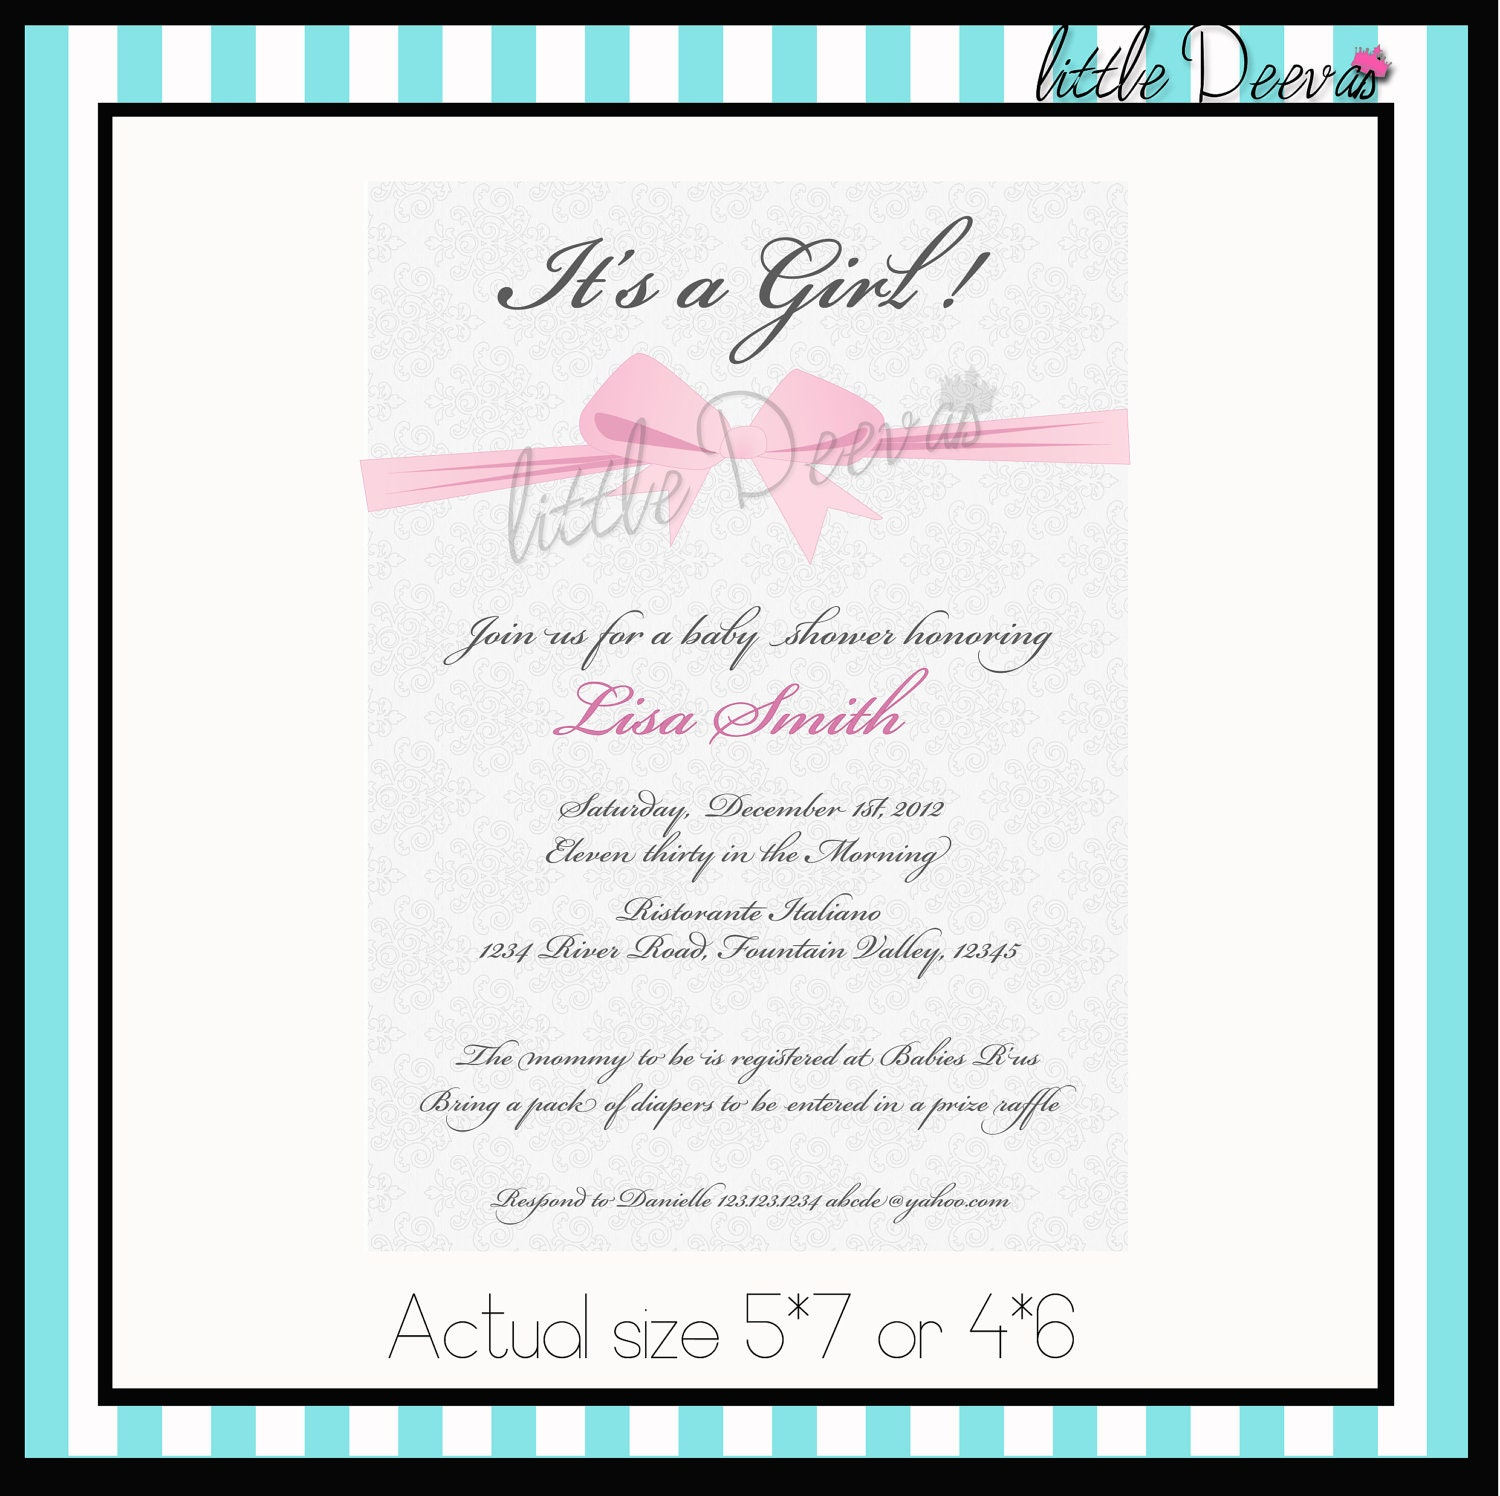 to baby shower invitation custom wording and color invite on etsy